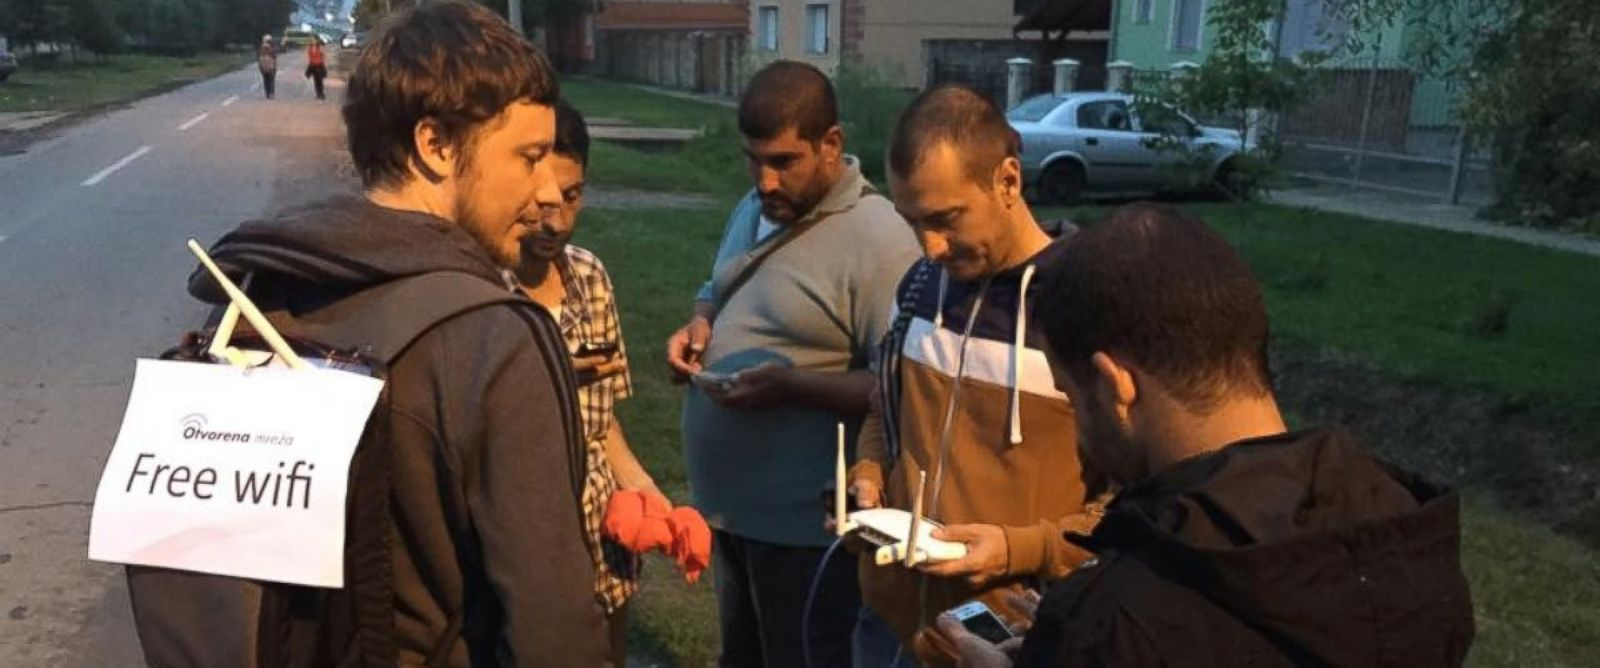 PHOTO:Project Open Network volunteer talking with refugees and migrants in Tovarnik, Croatia, on September 20th.